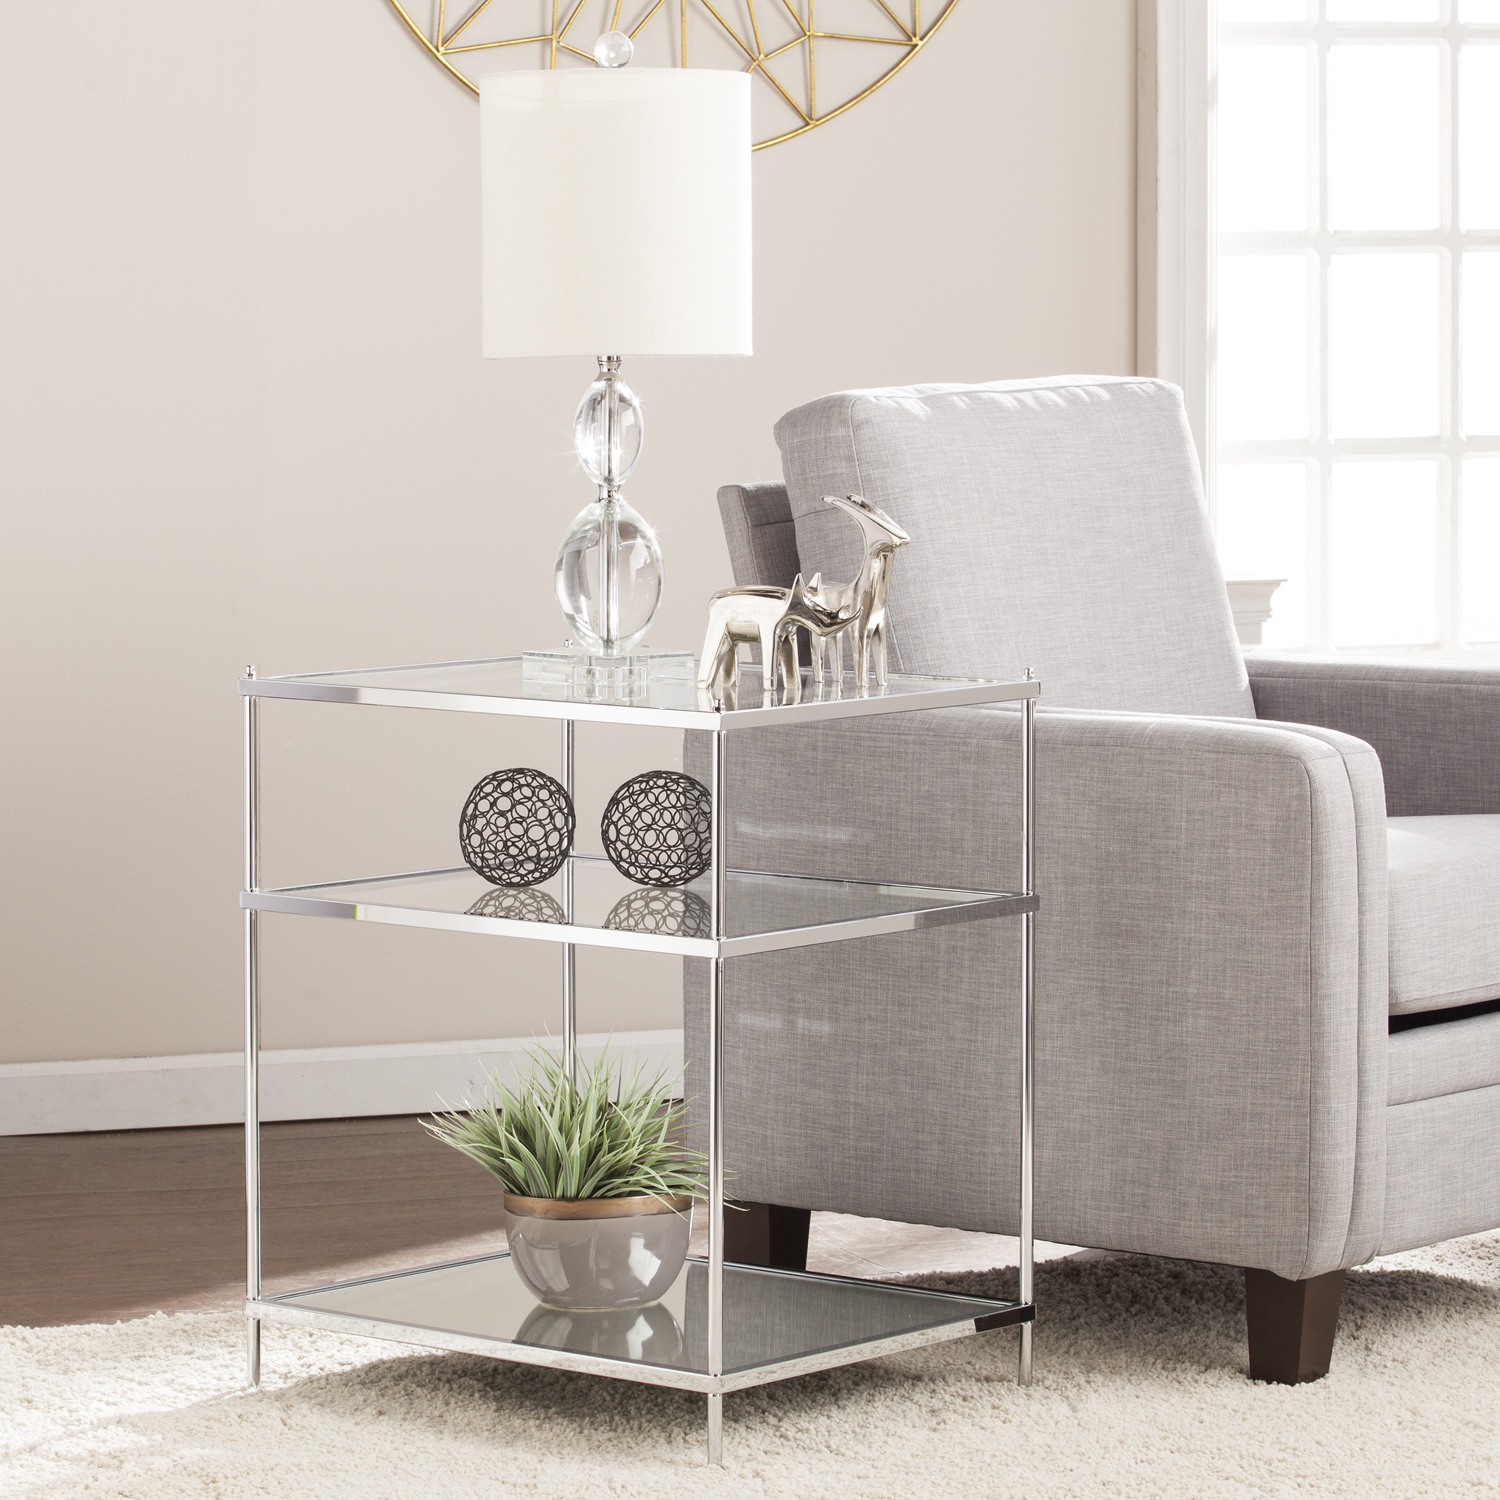 knox glam mirrored side table chrome accent uttermost tables ethan allen coffee small glass top patio sofa set clearance bedside lockers inch console kidney shaped cocktail shell